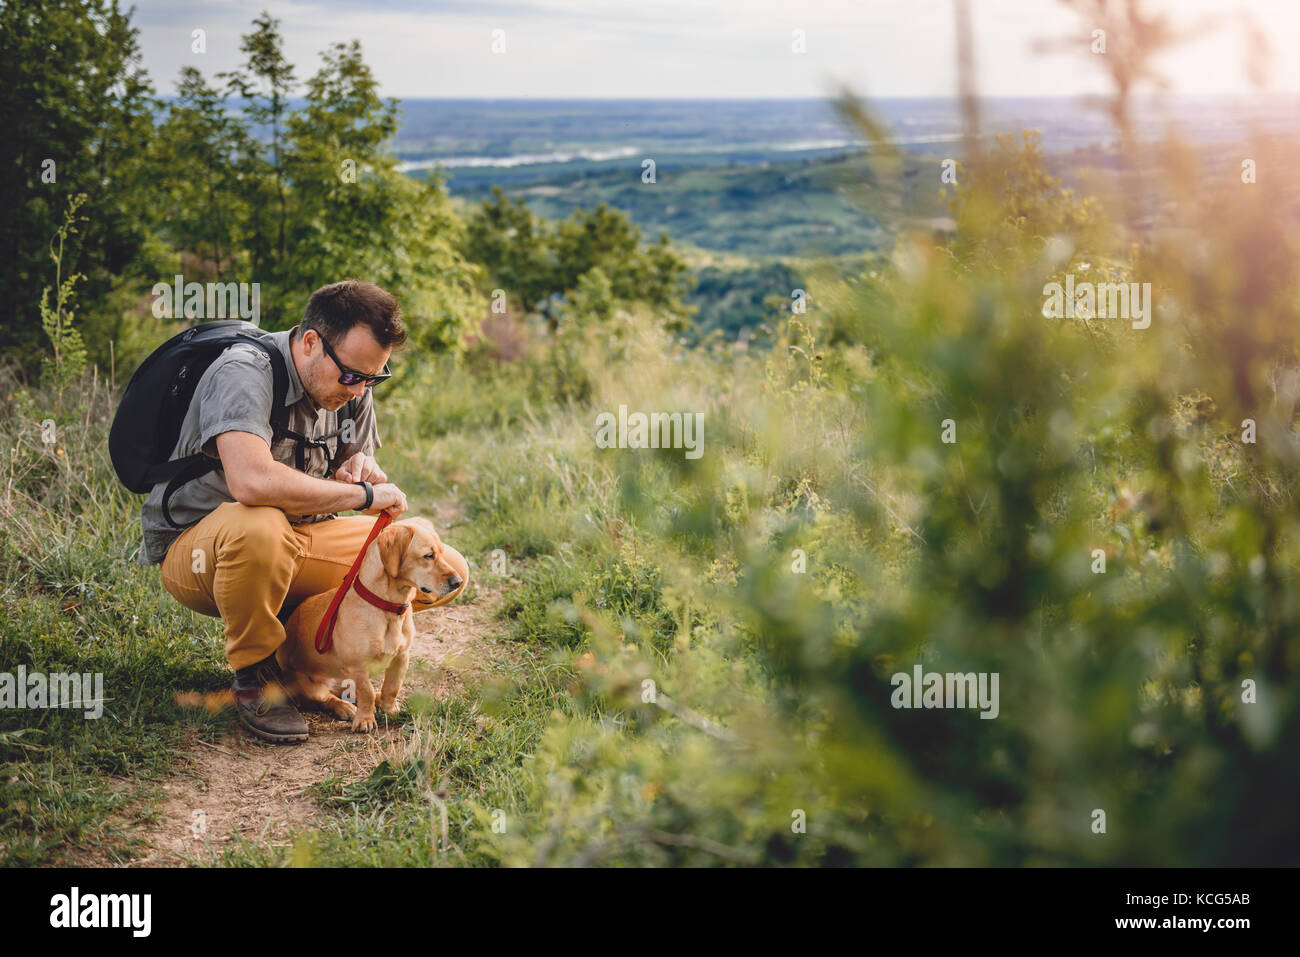 Man wearing sunglasses with a small yellow dog resting at the hiking trail - Stock Image